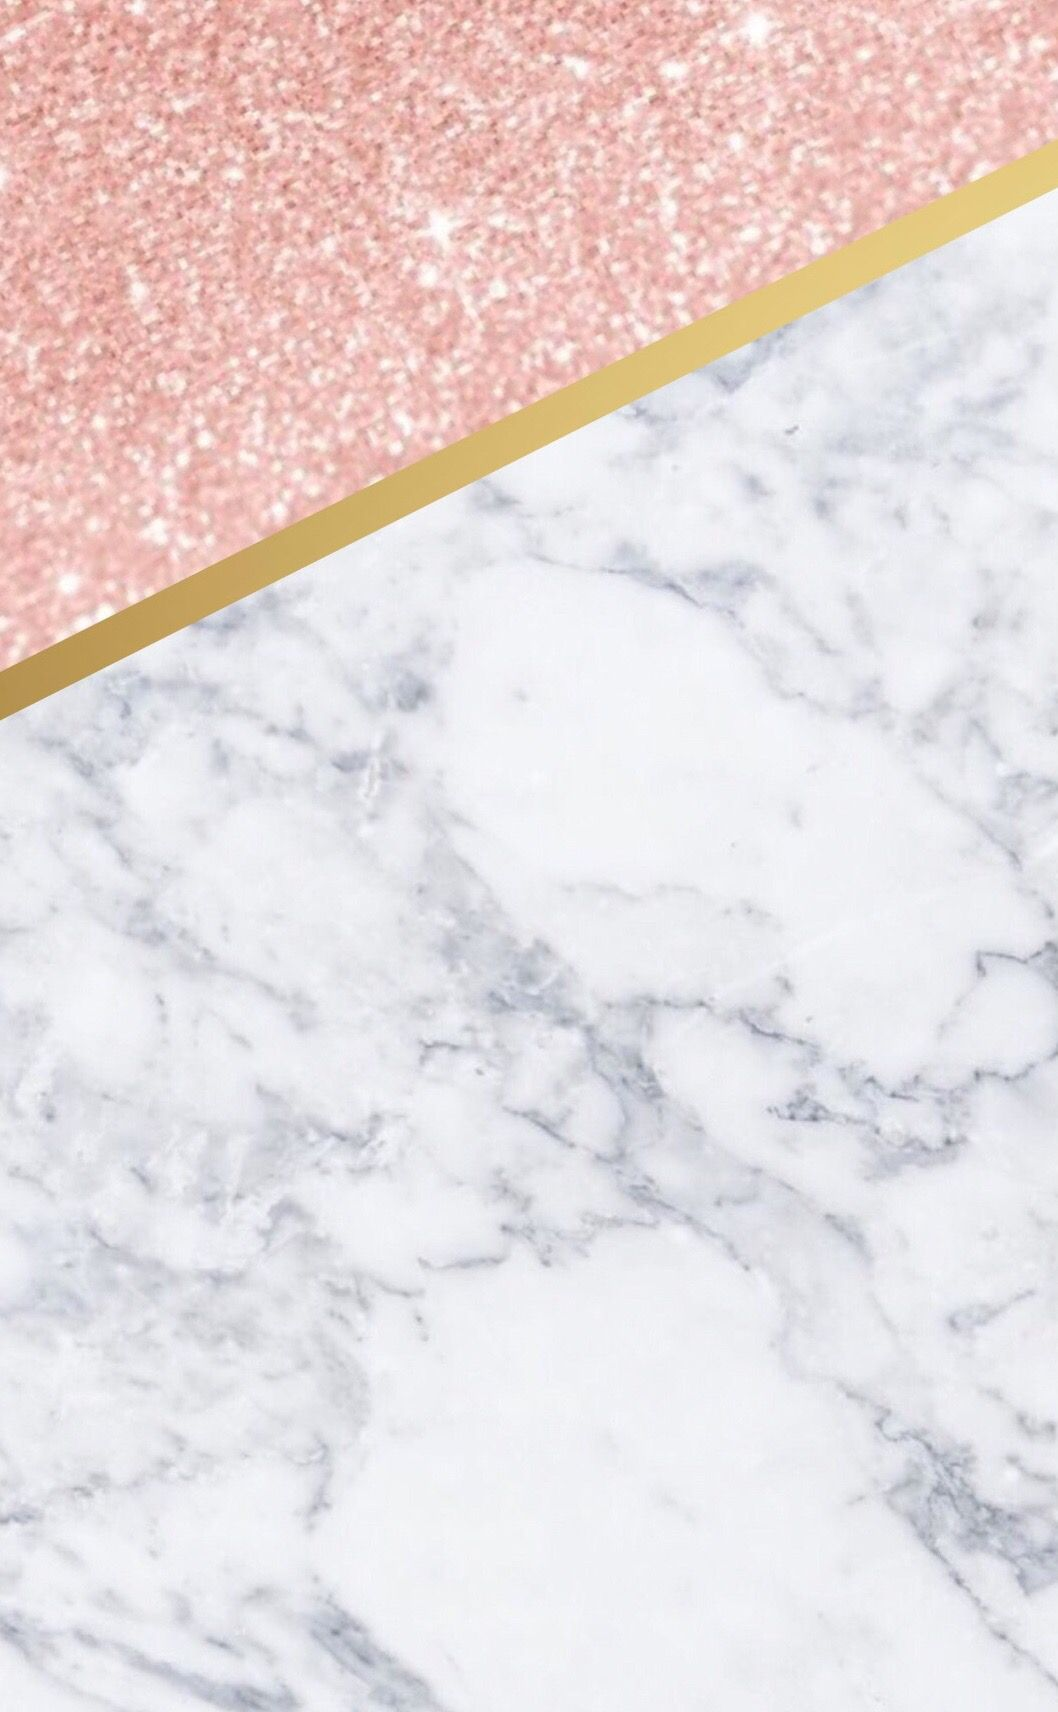 Rose Gold Marble Iphone Backgrounds